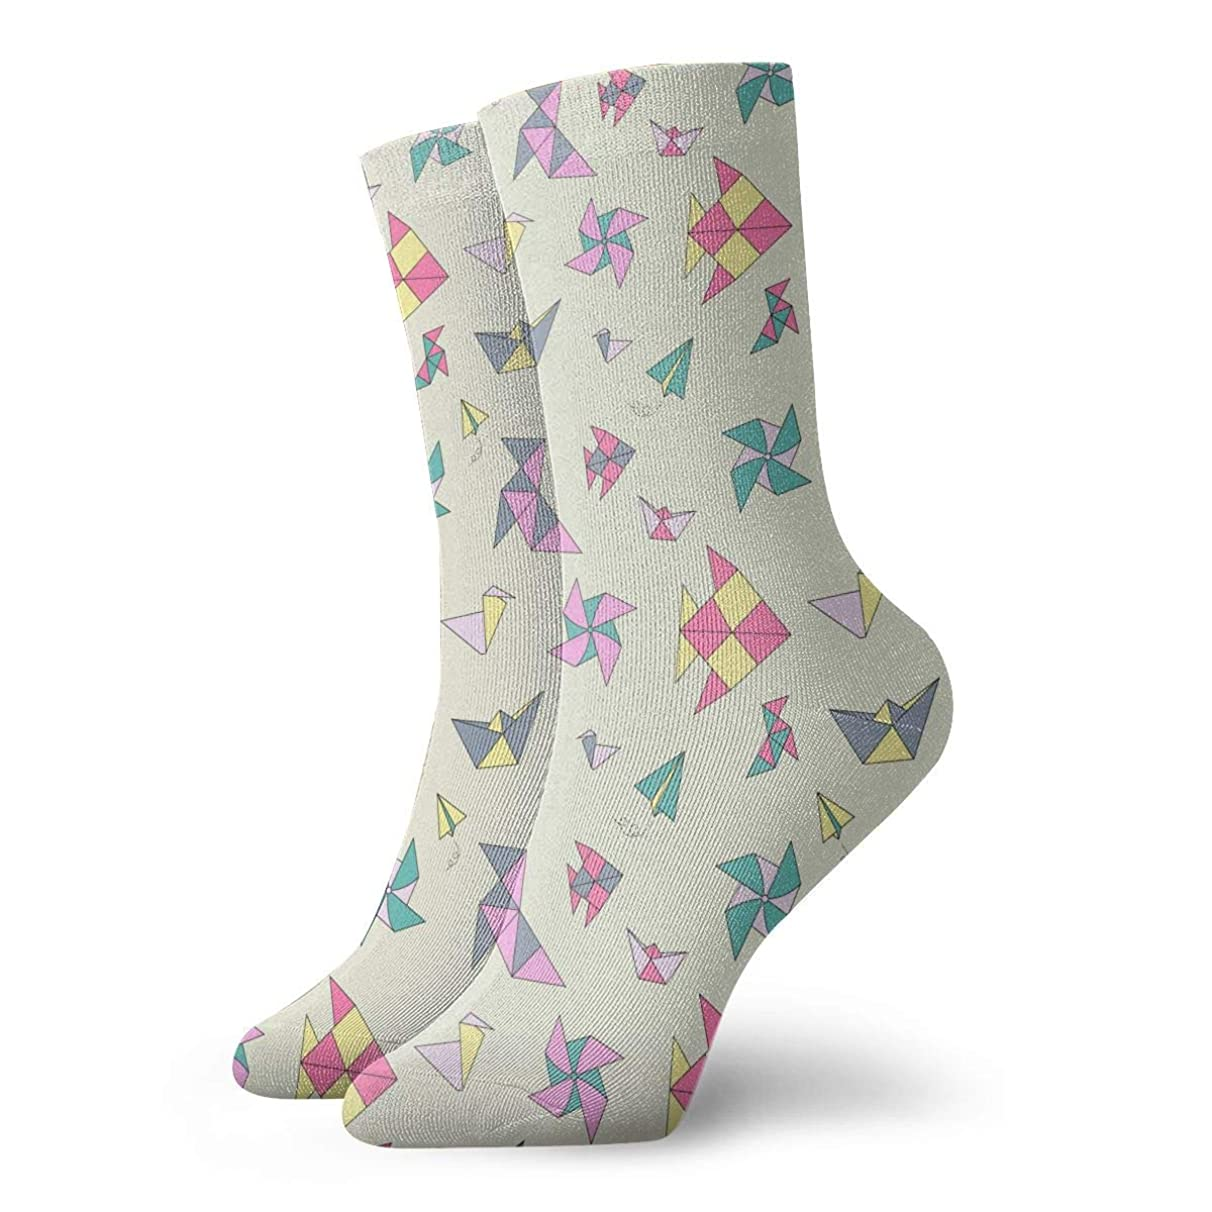 WEEDKEYCAT Windmill and Kite Adult Short Socks Cotton Cute Socks for Mens Womens Yoga Hiking Cycling Running Soccer Sports